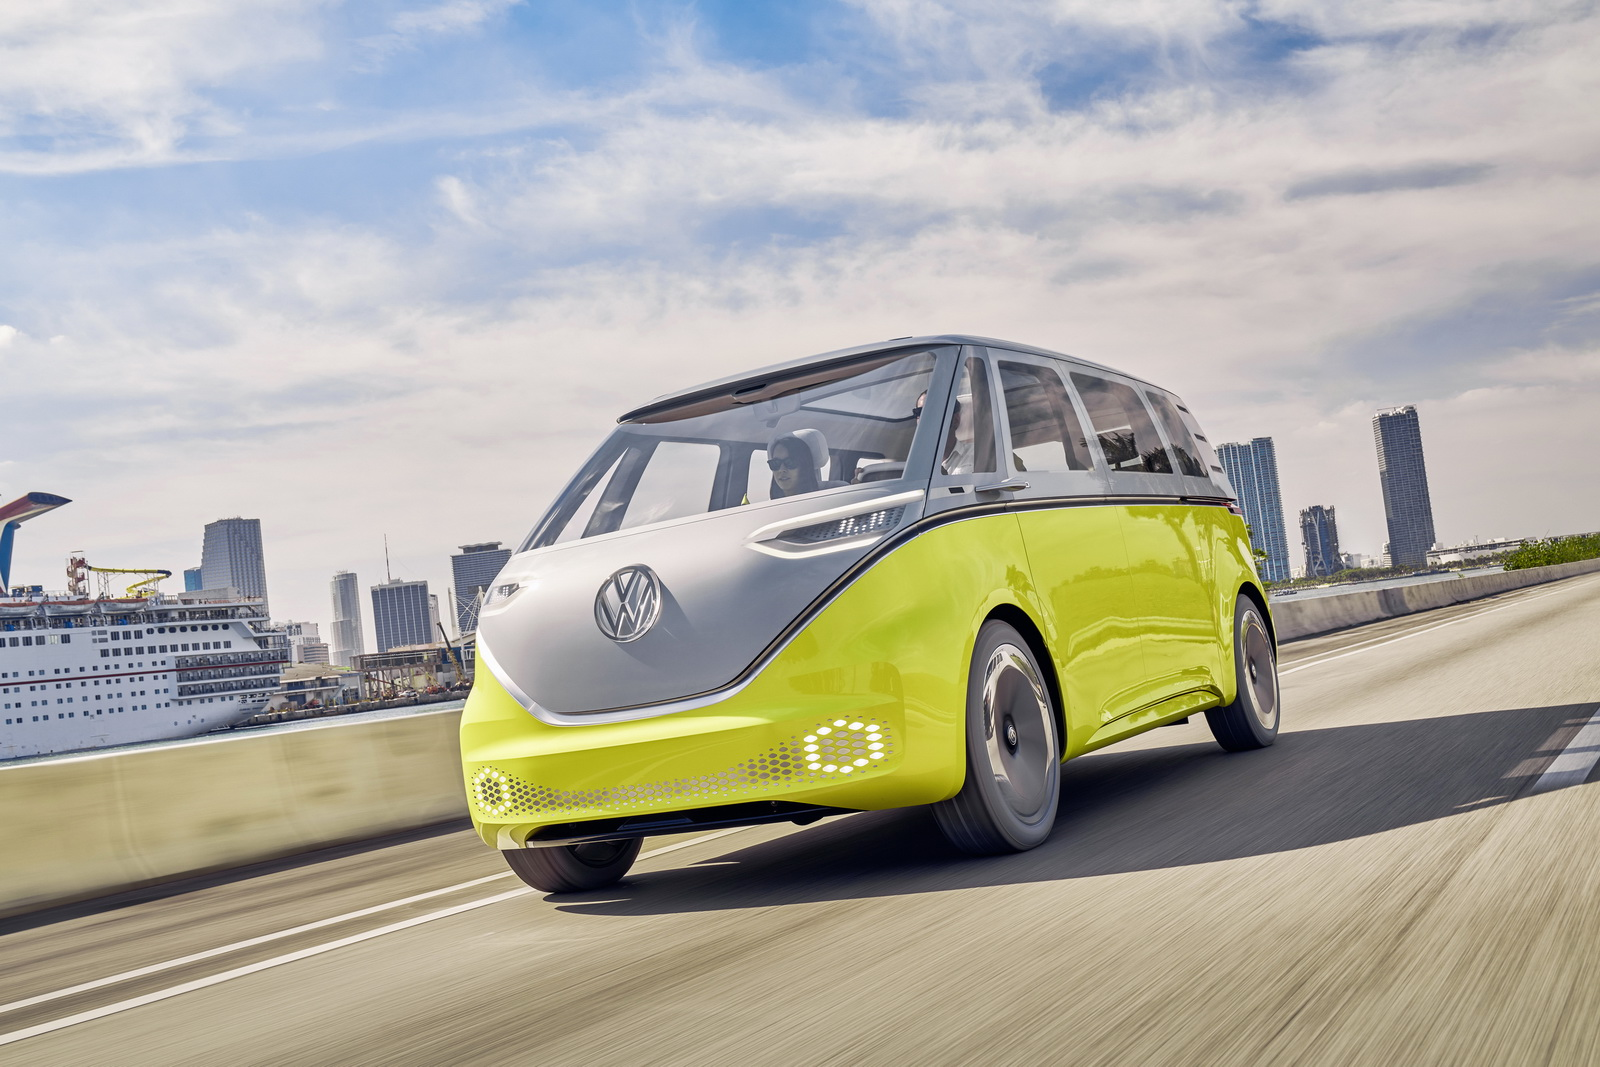 Volkswagen To Invest $12 Billion For EVs In China   Carscoops